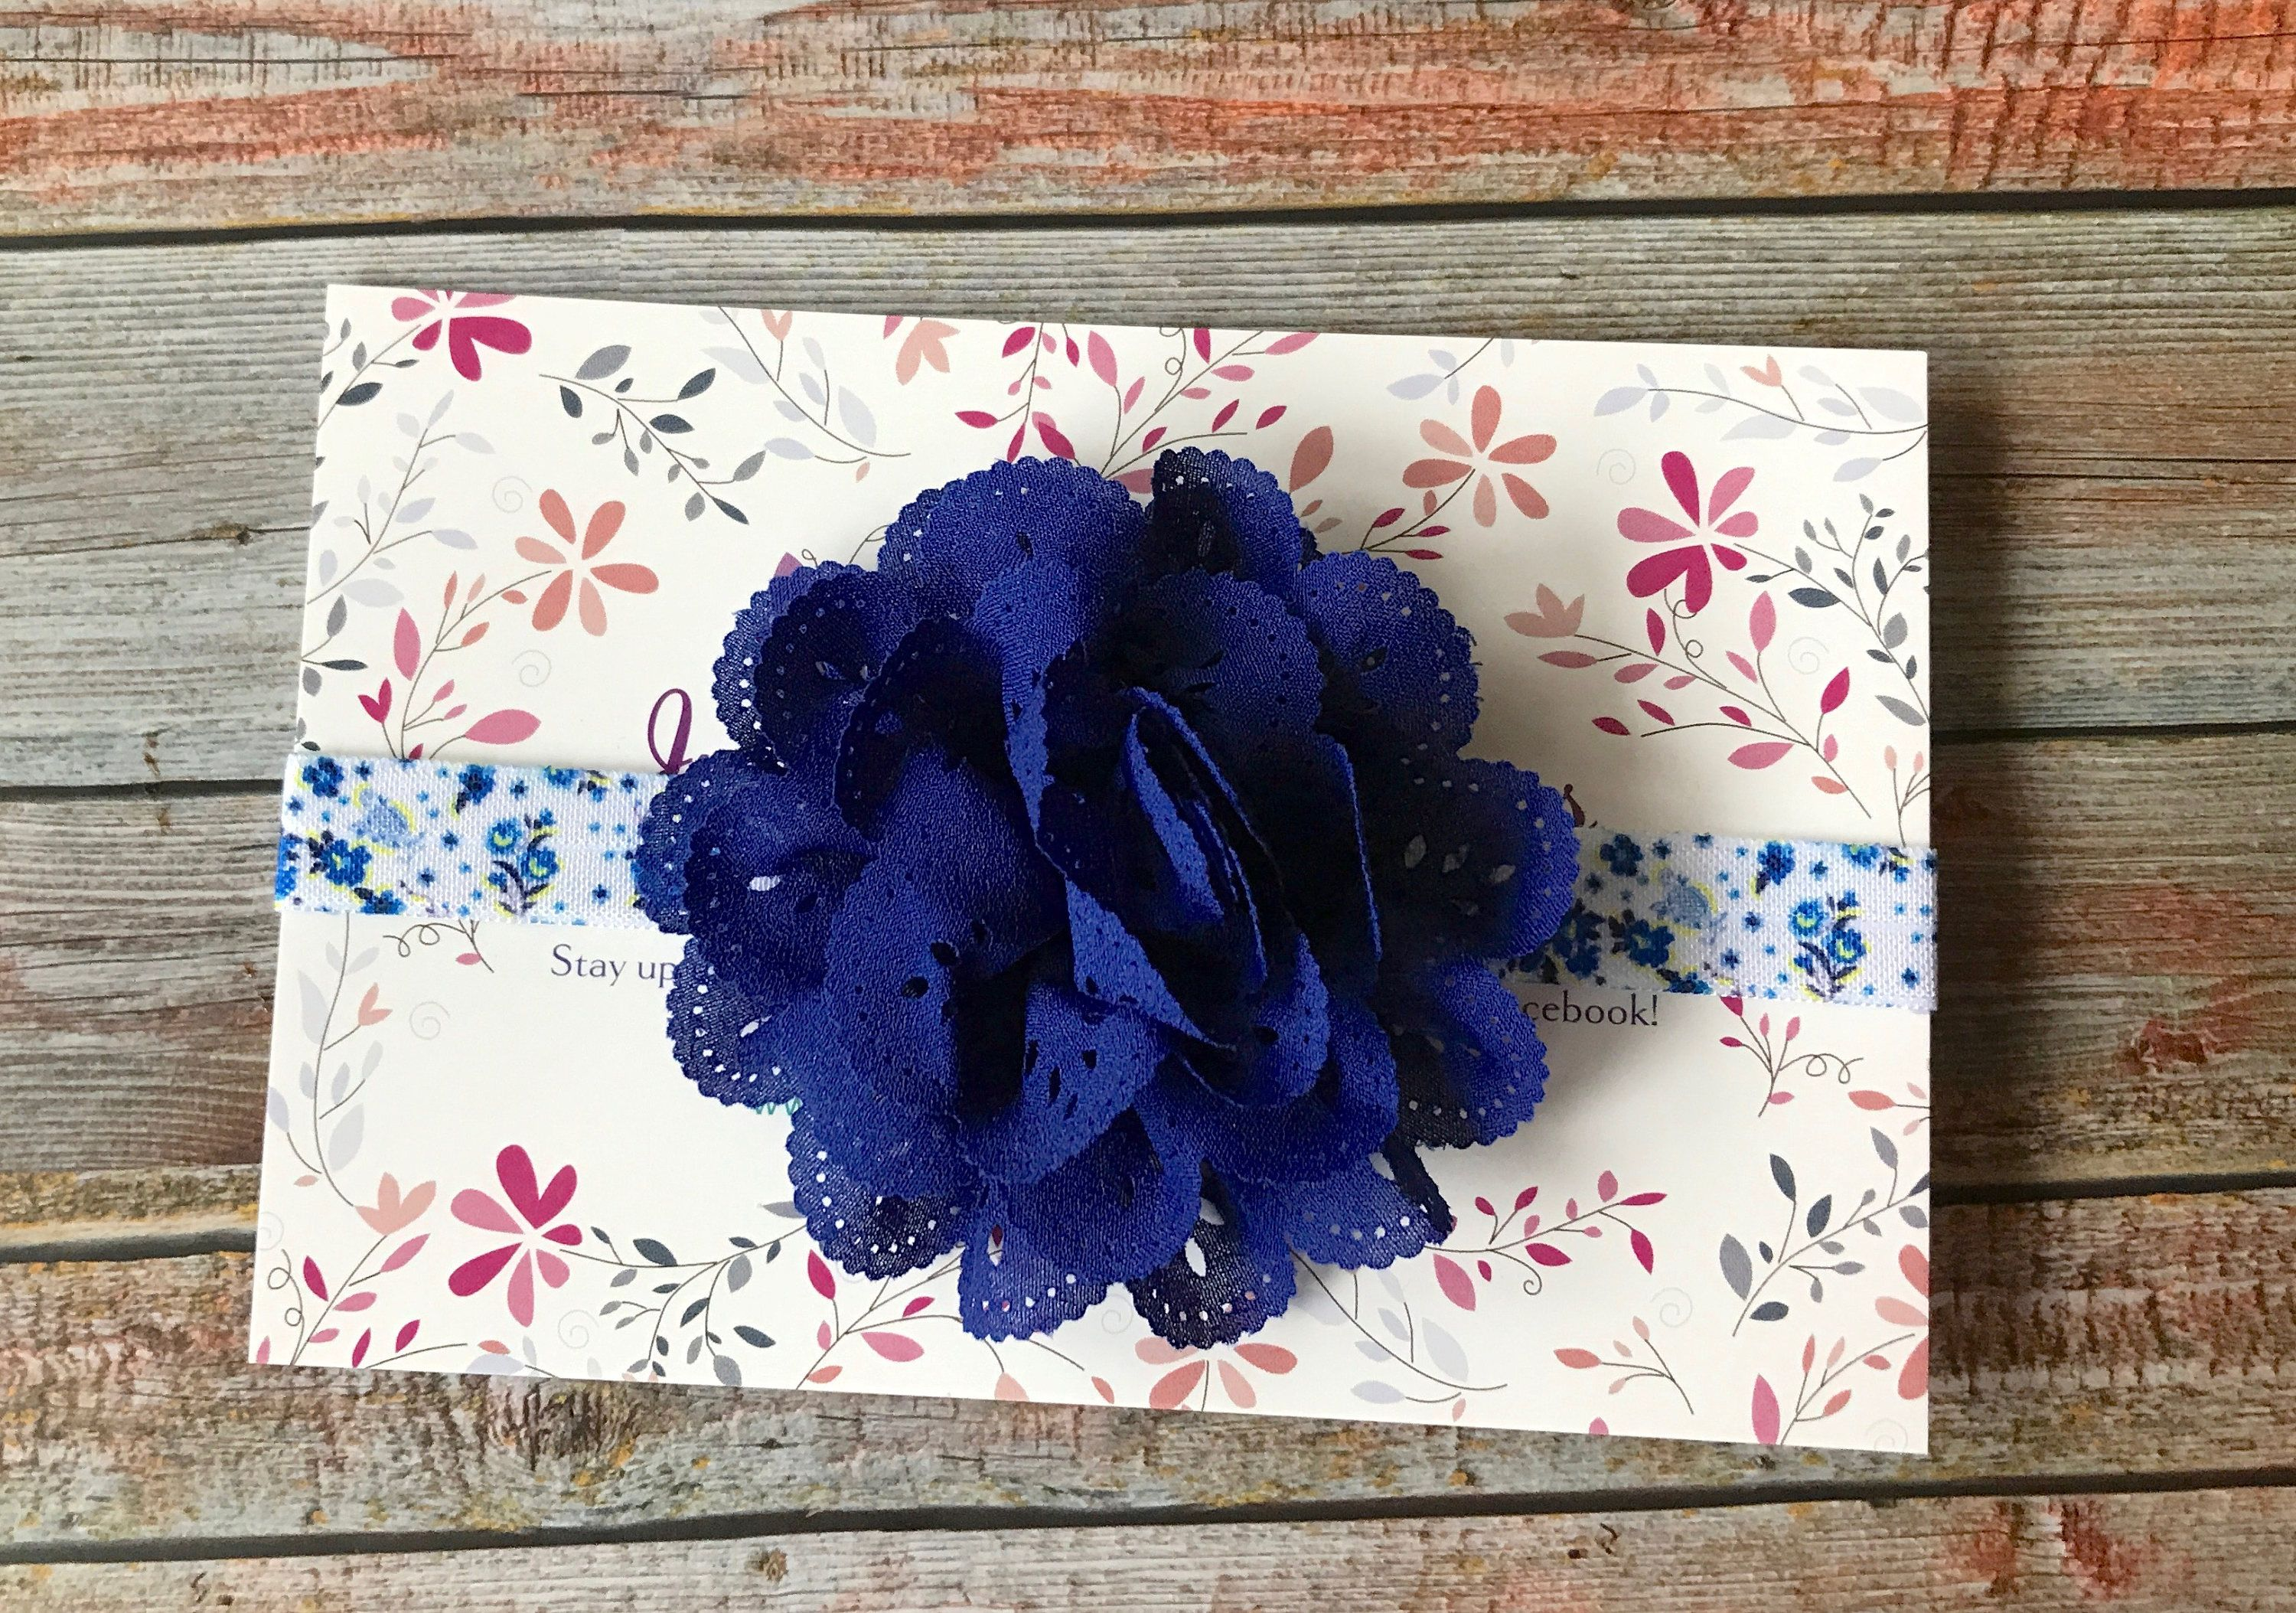 Baby Headband/Royal Blue Headband/Newborn Headband/Baby Girl Headband/Royal Blue/Baby Headbands/Headband/Infant Headband/Blue Baby Headband by JuliaGraceDesigns1 on Etsy